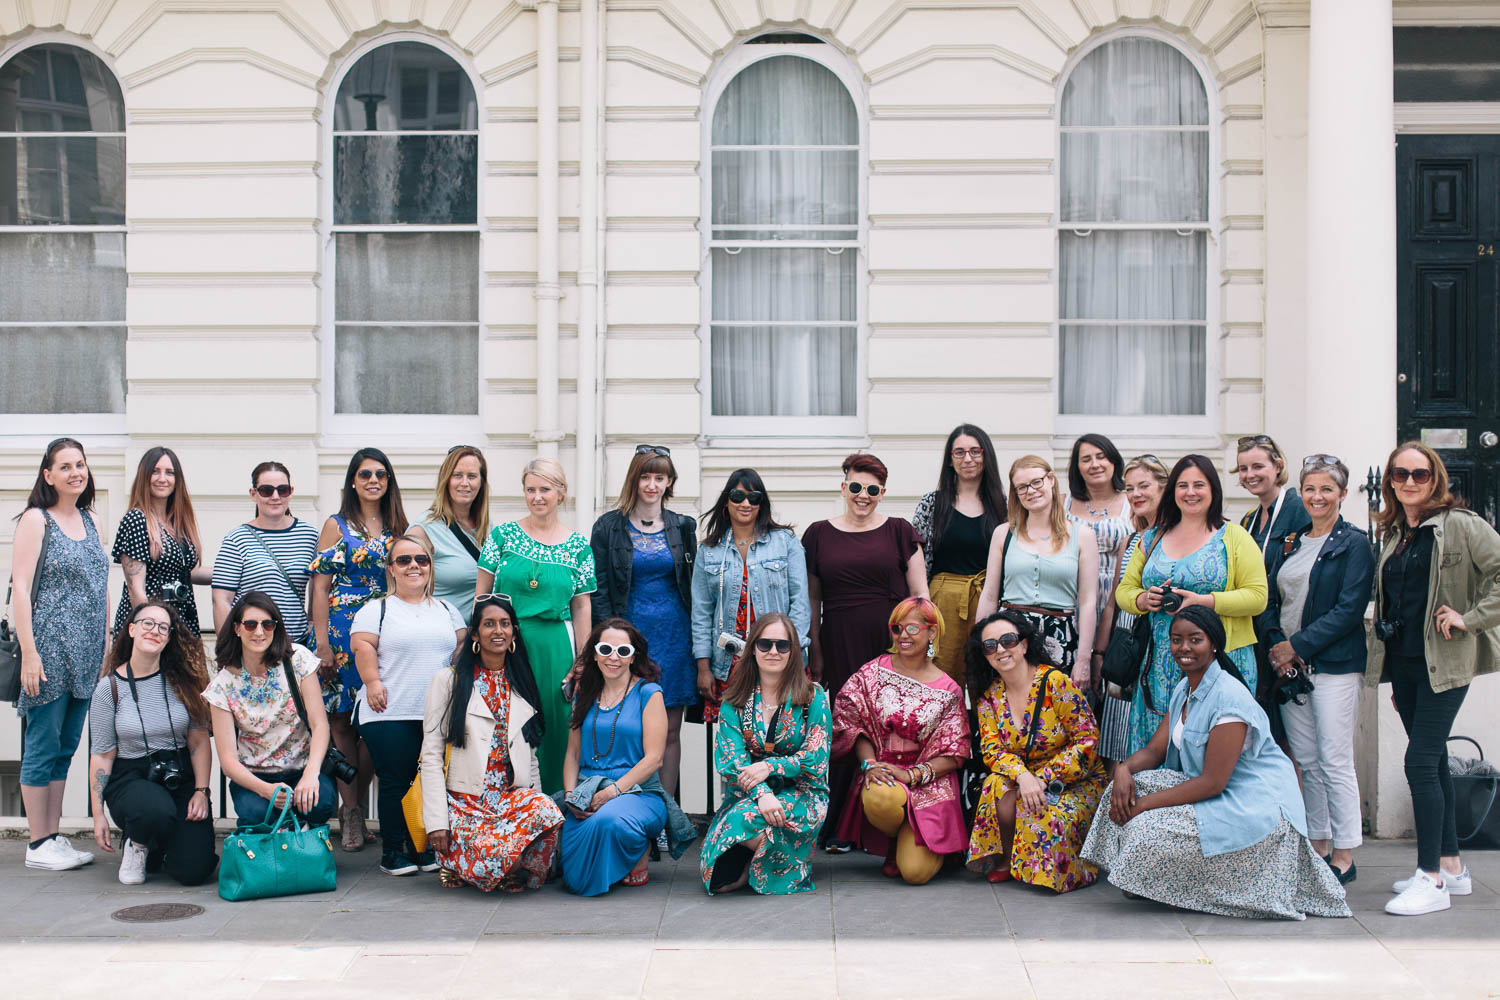 Group photo by www.josephgalvinphotography.com, courtesy of blogtacular.com